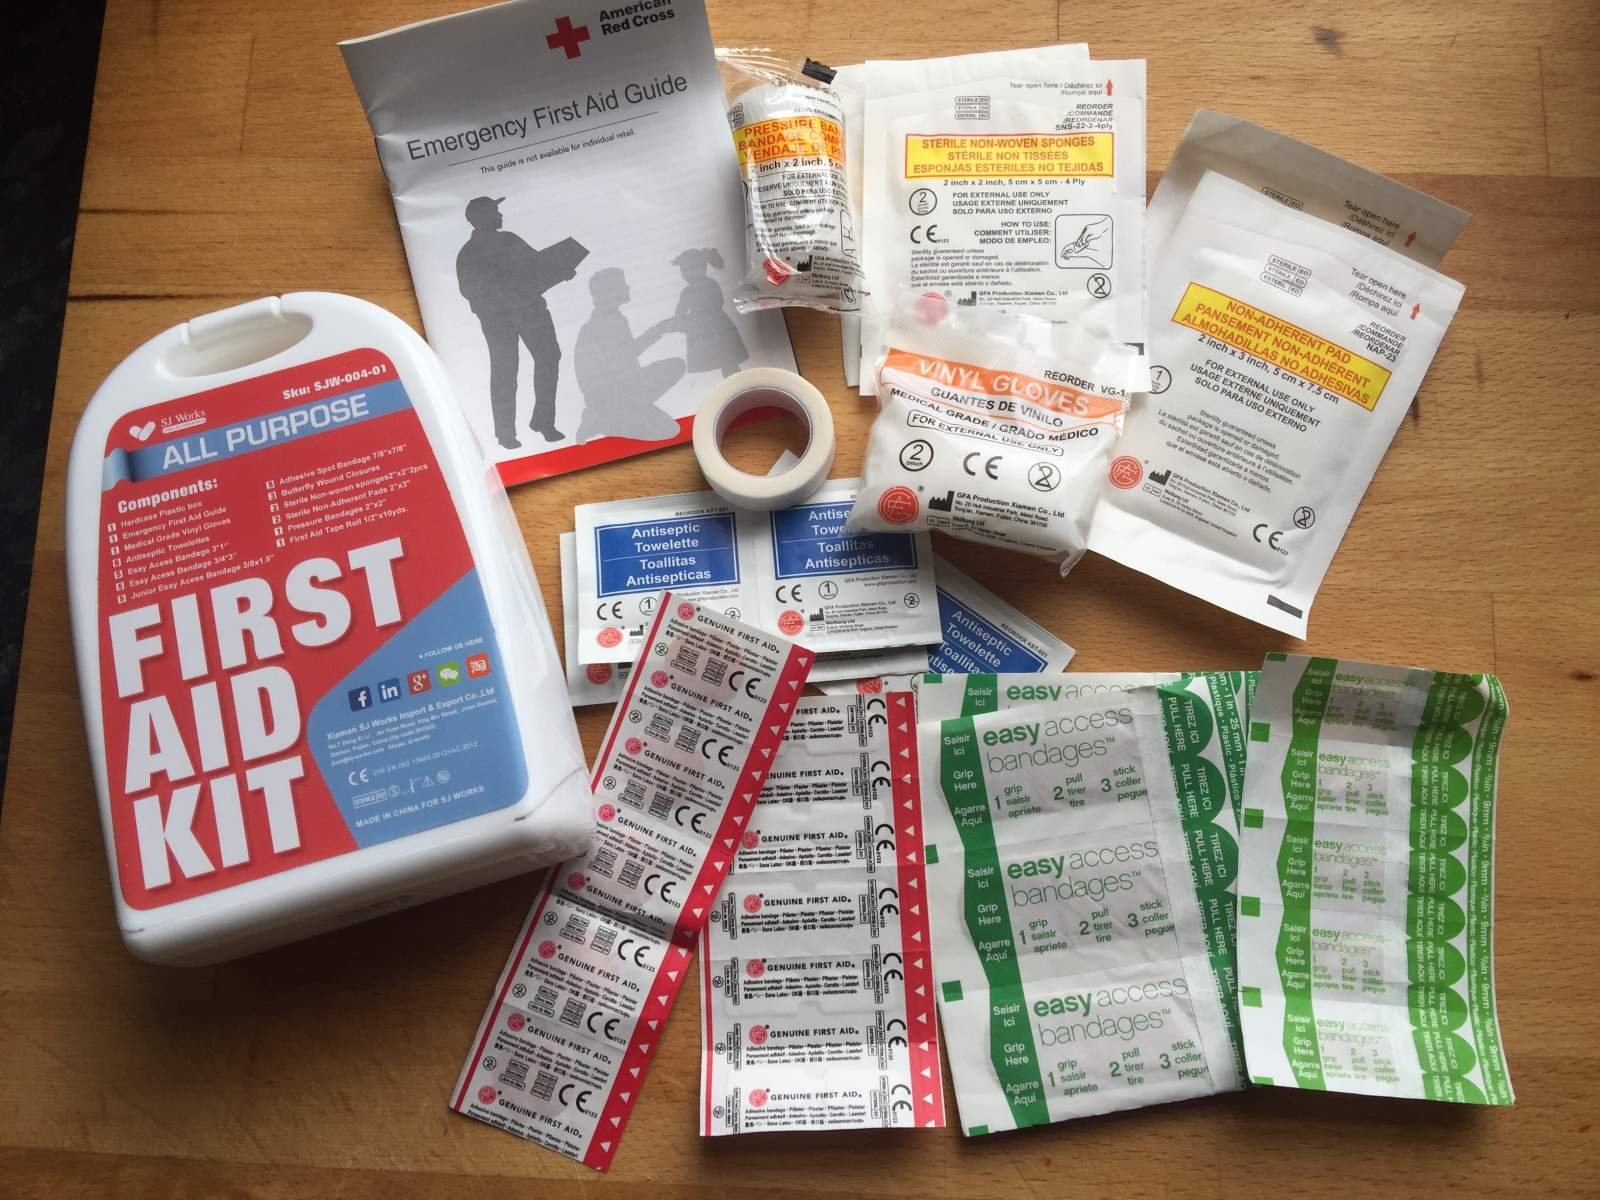 sj works first aid kit for days out with the kids contents